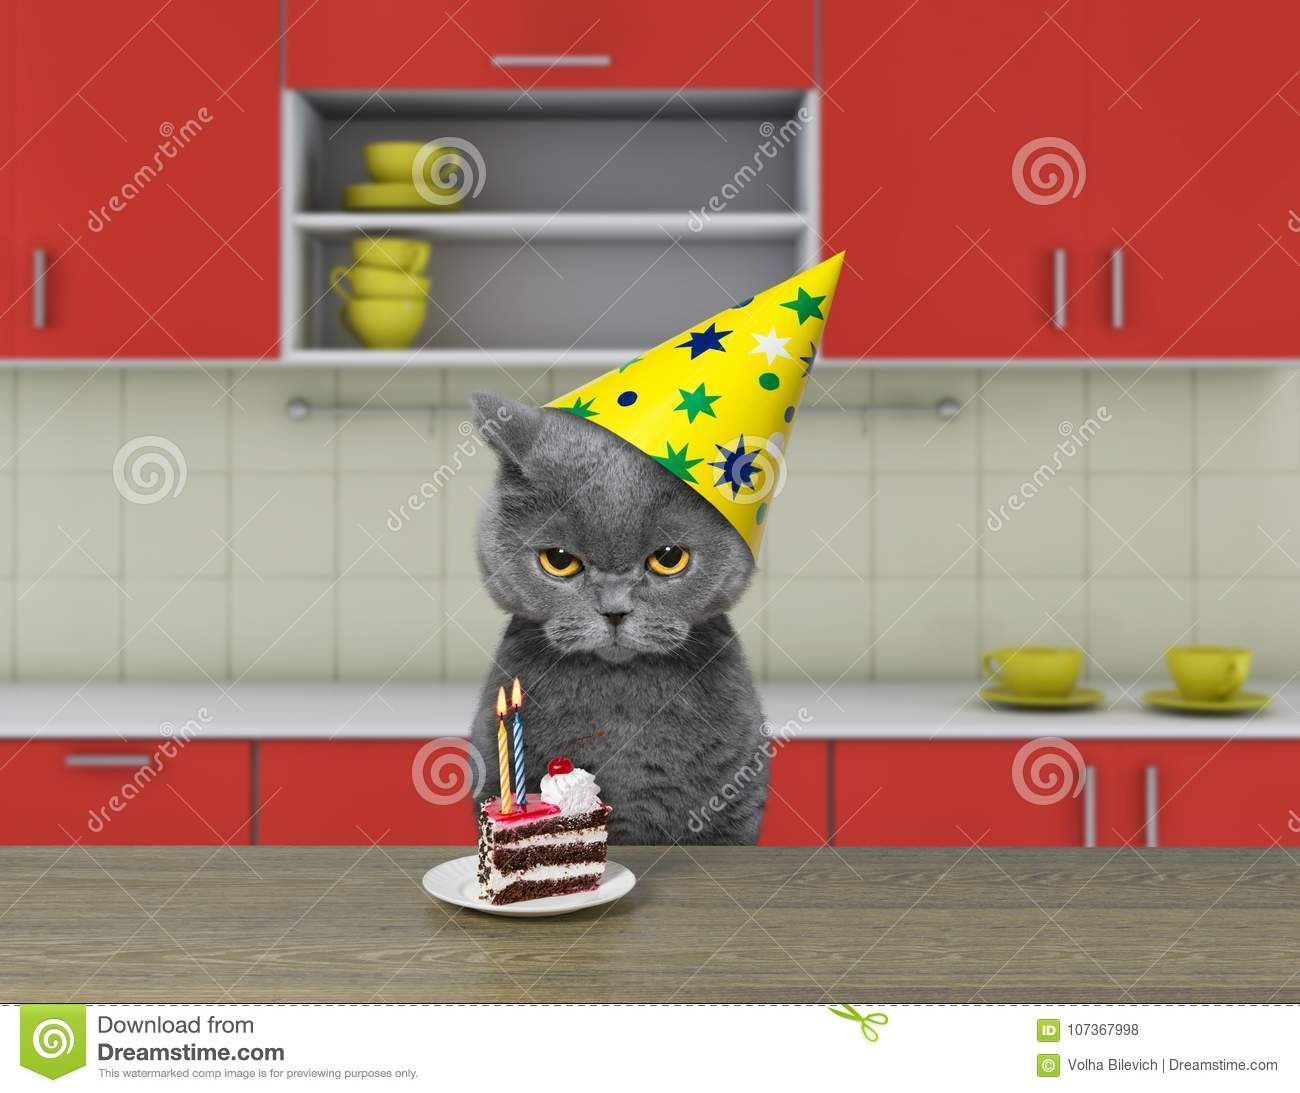 Funny cat waiting to eat chocolate cake